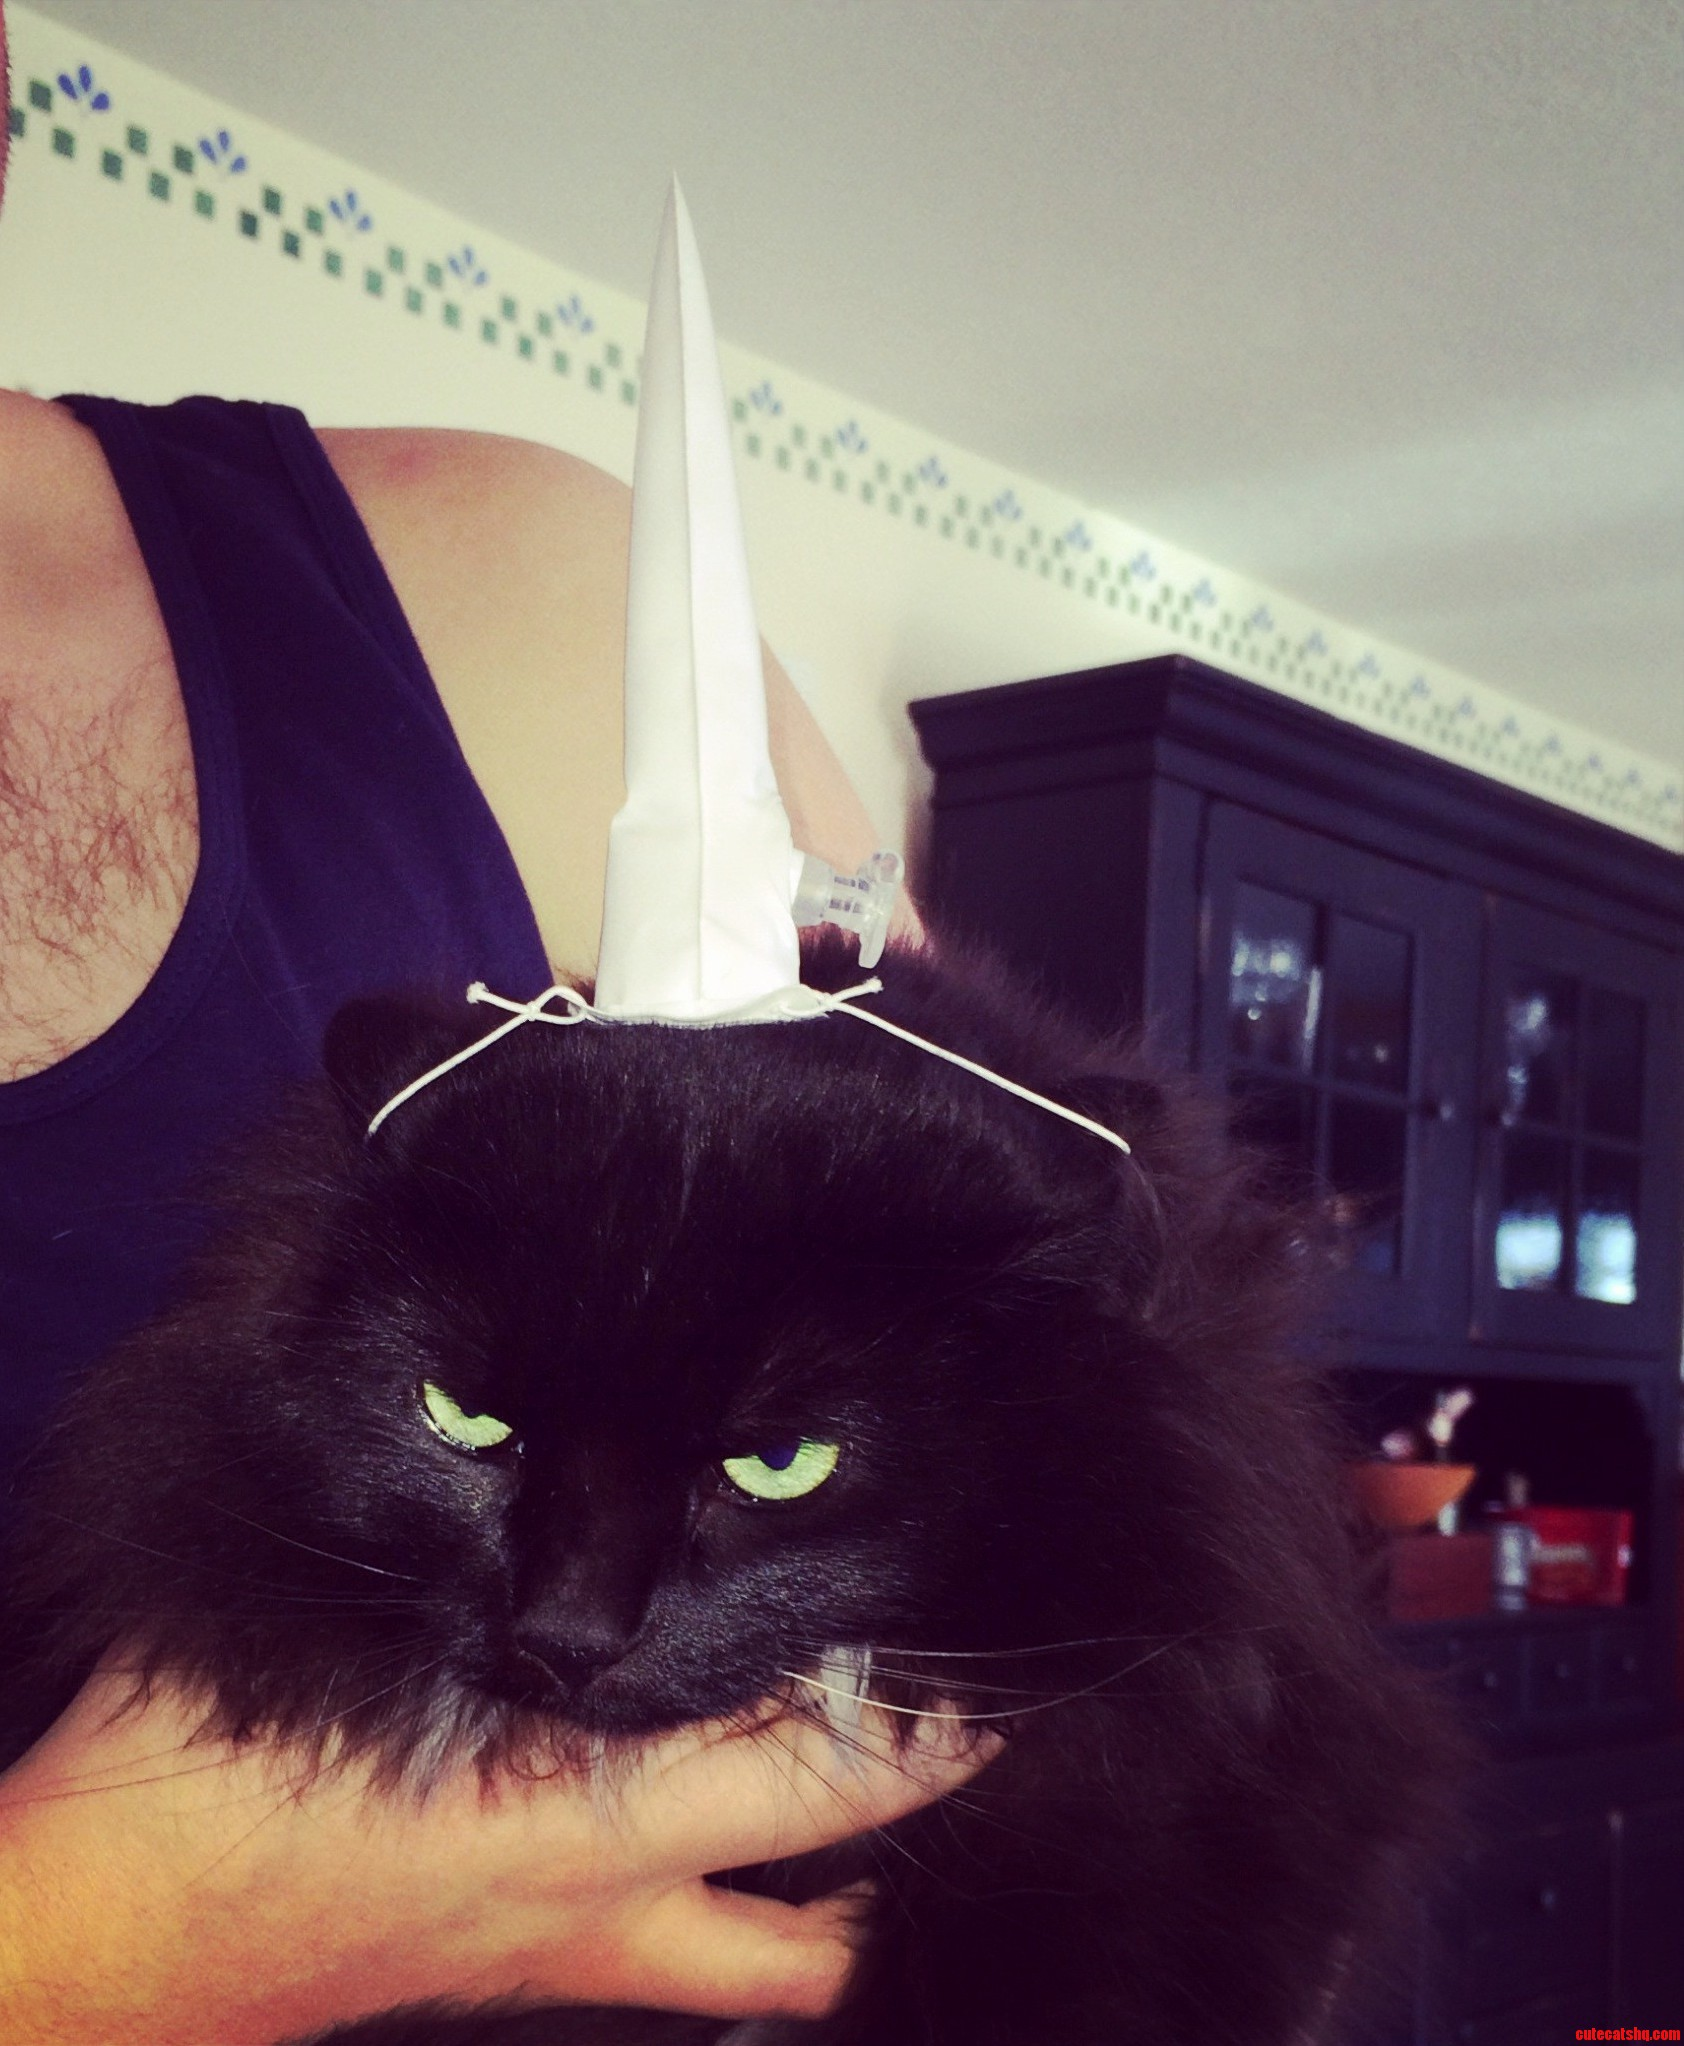 My Moms Cat Got A Unicorn Horn For Xmas. Needless To Say The Cat Was Not Impressed